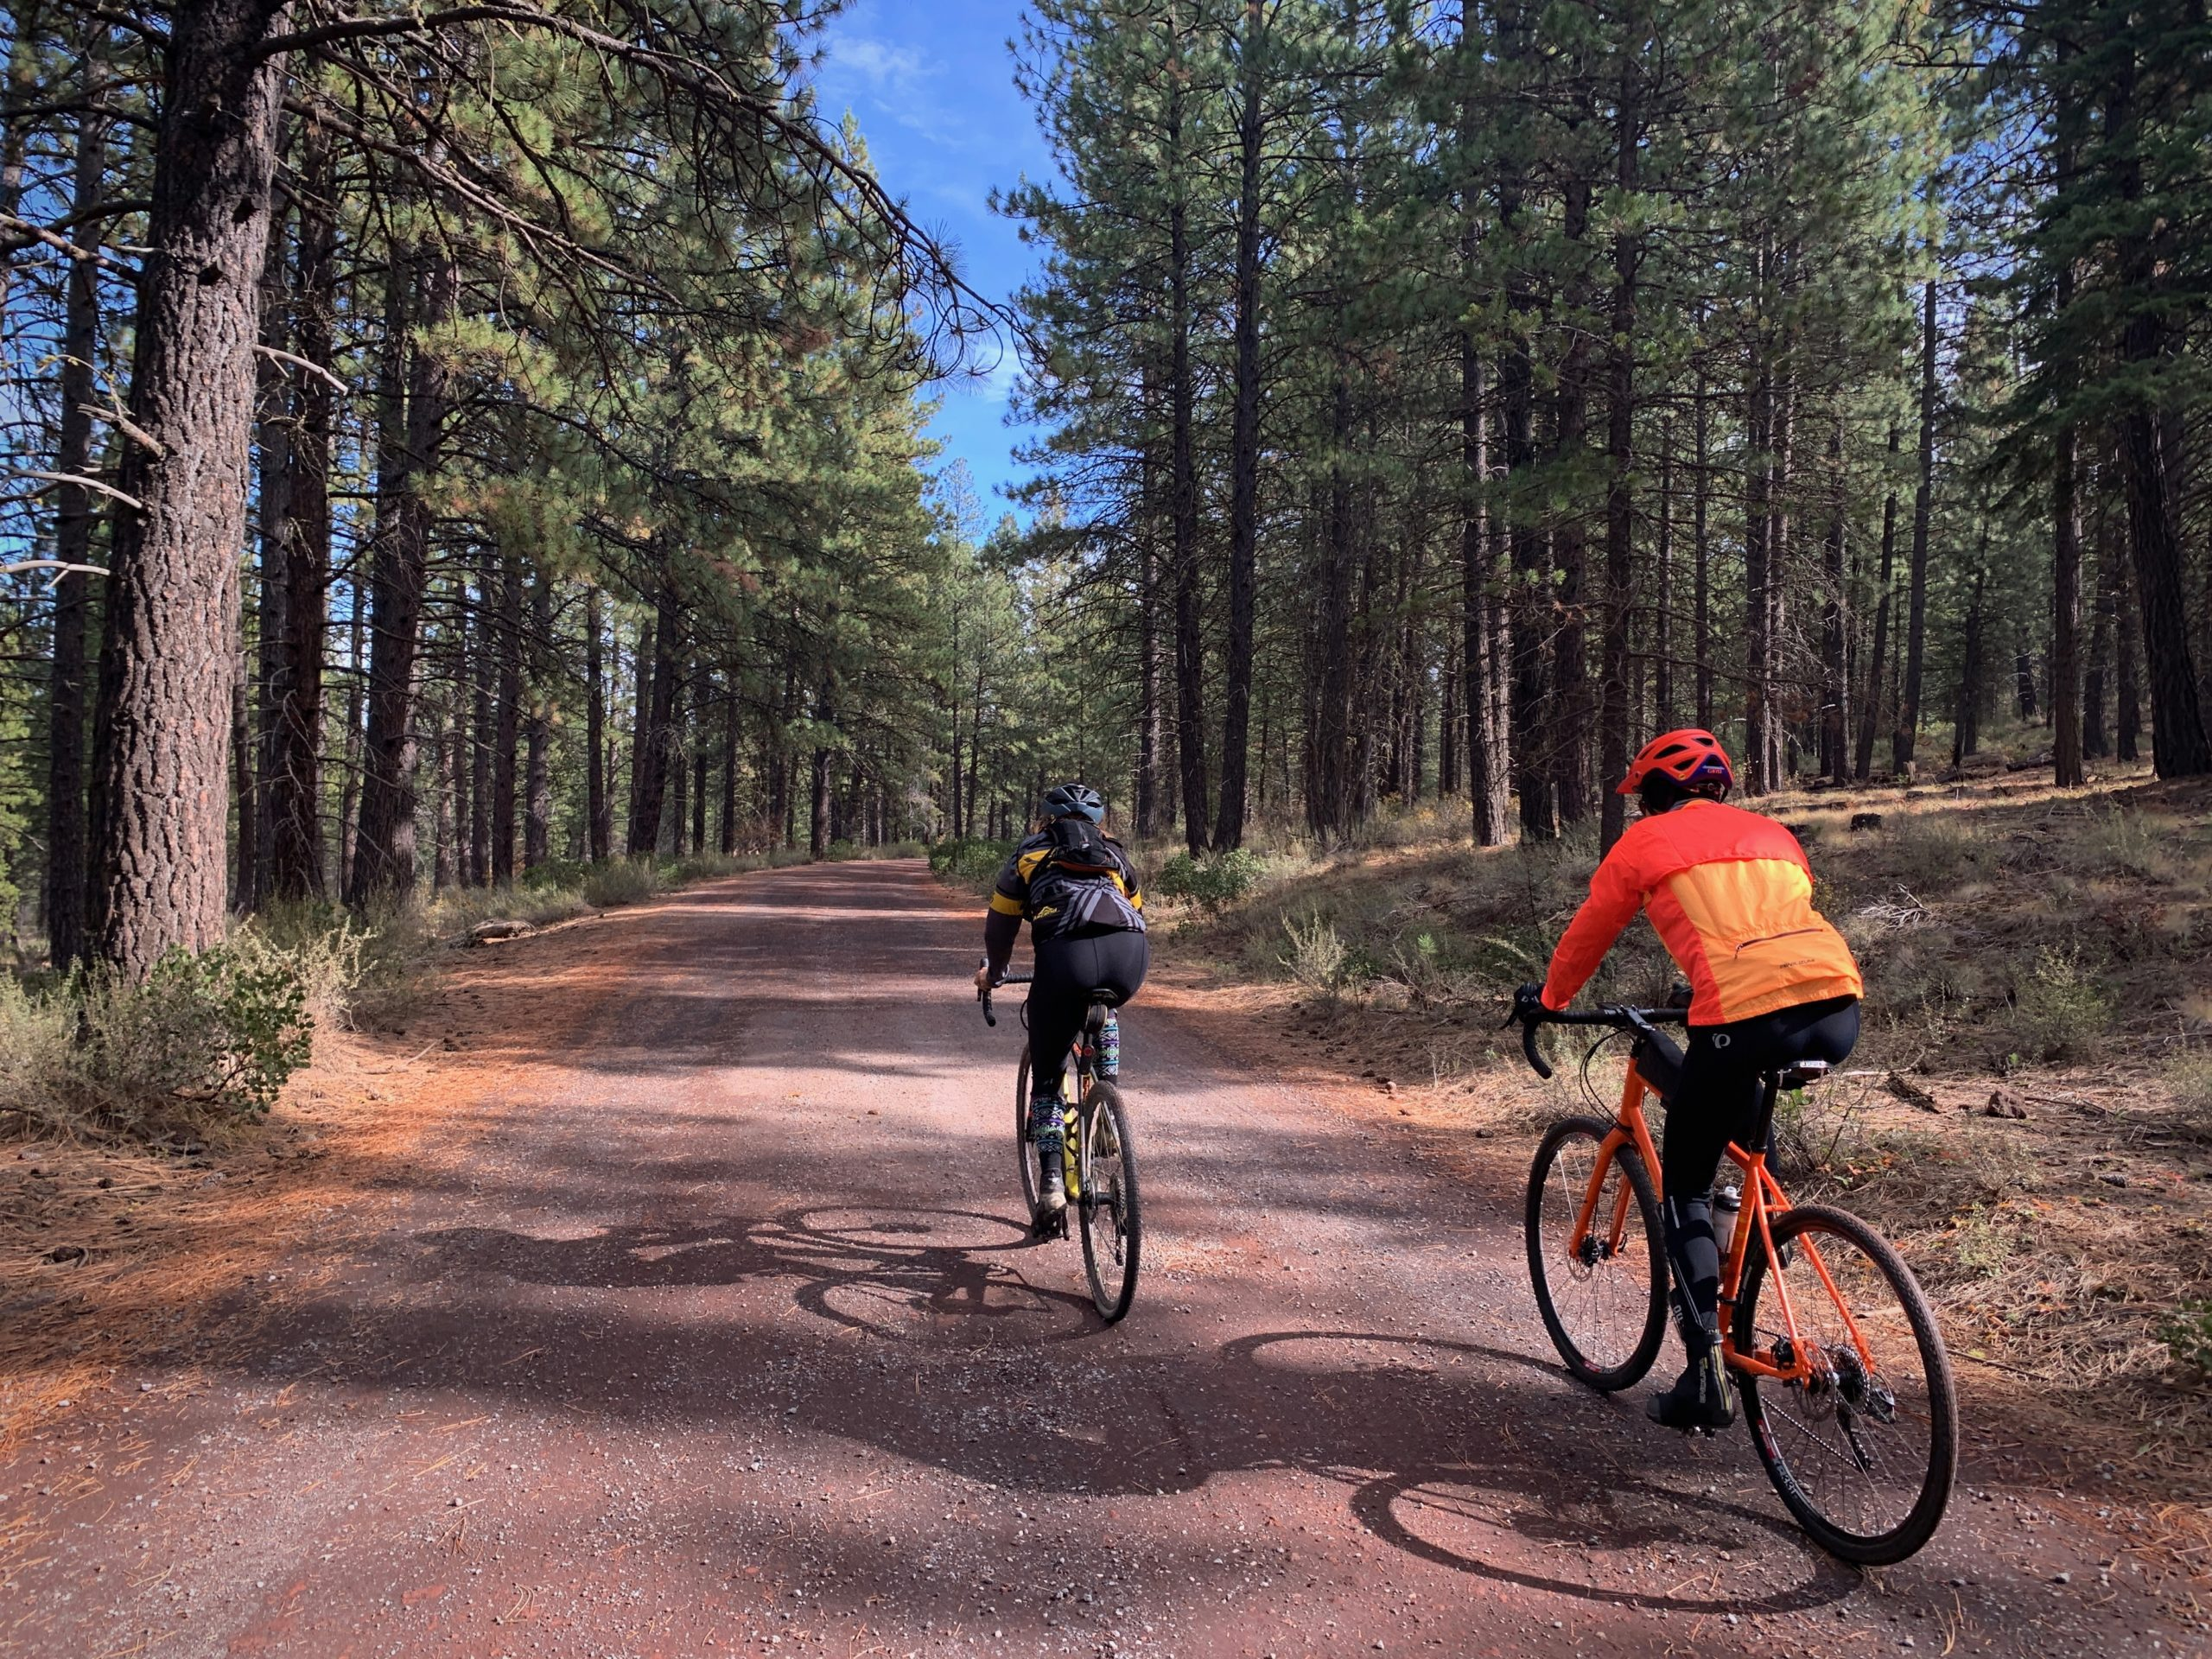 Two cyclists on the gravel road leading to Benham Falls in Deschutes National Forest.